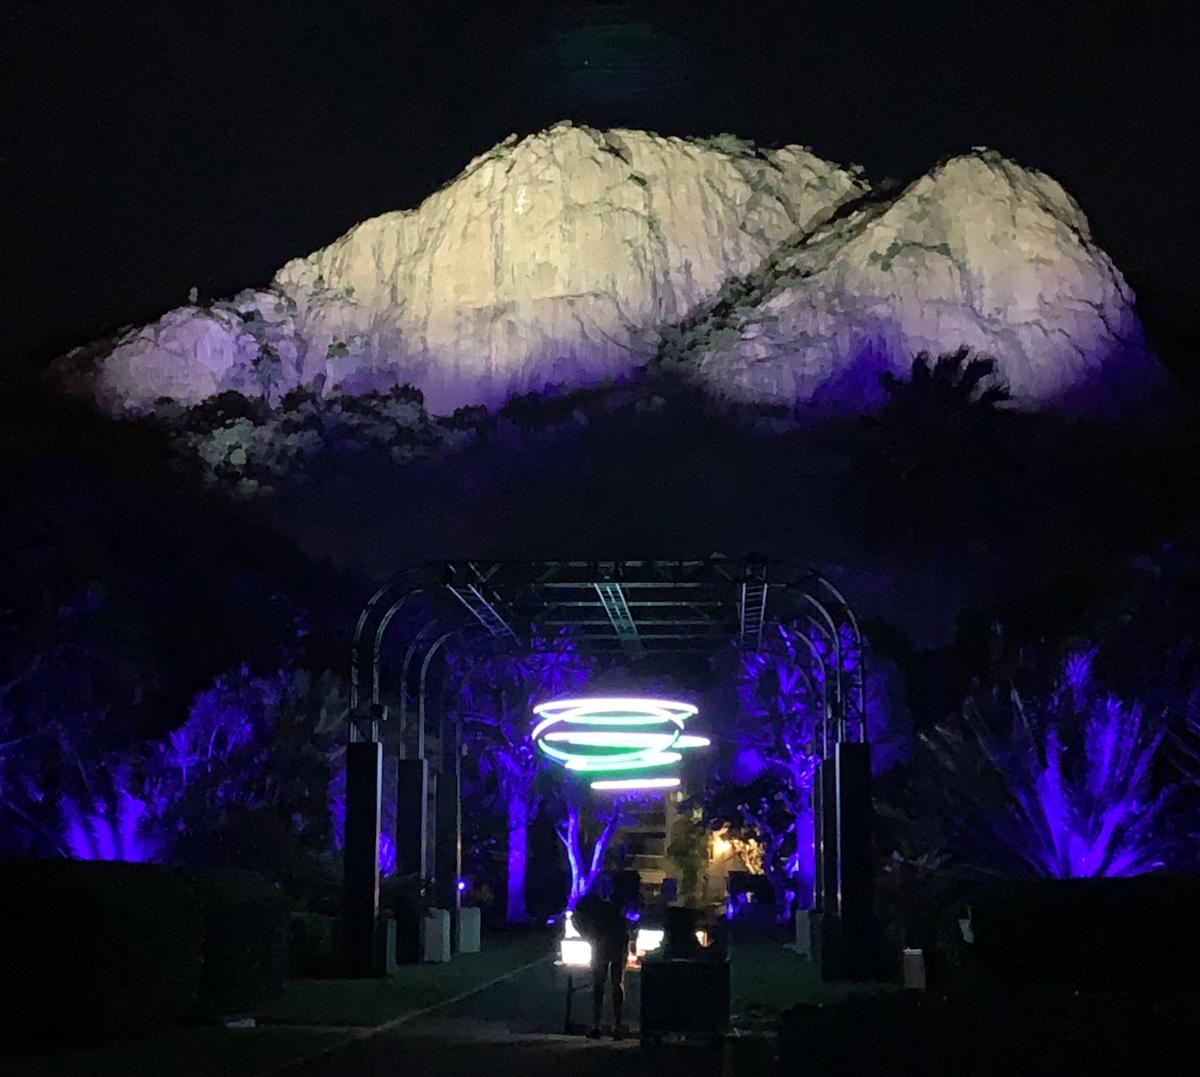 Townsville's Castle Hill and the HALO 'chandelier' in Queen's Gardens